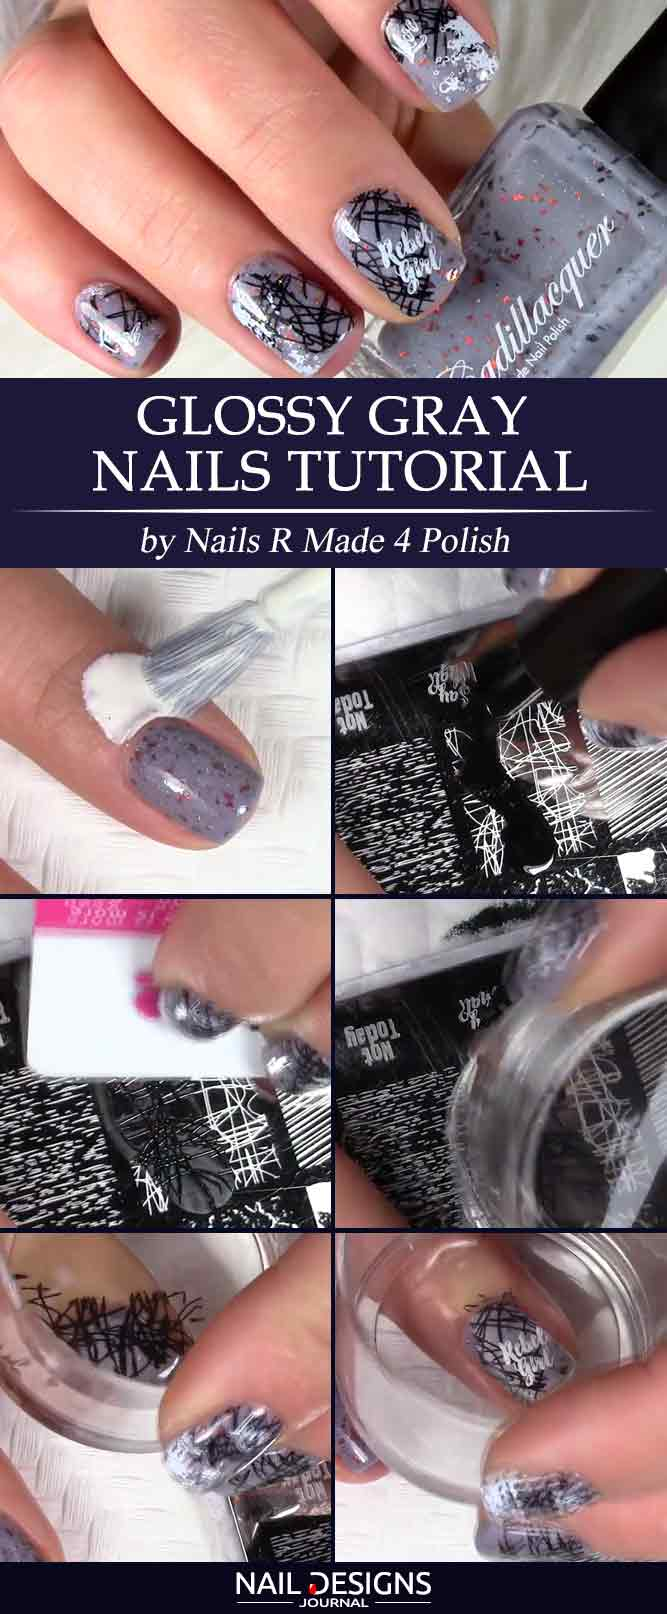 Glossy Gray Nails Tutorial